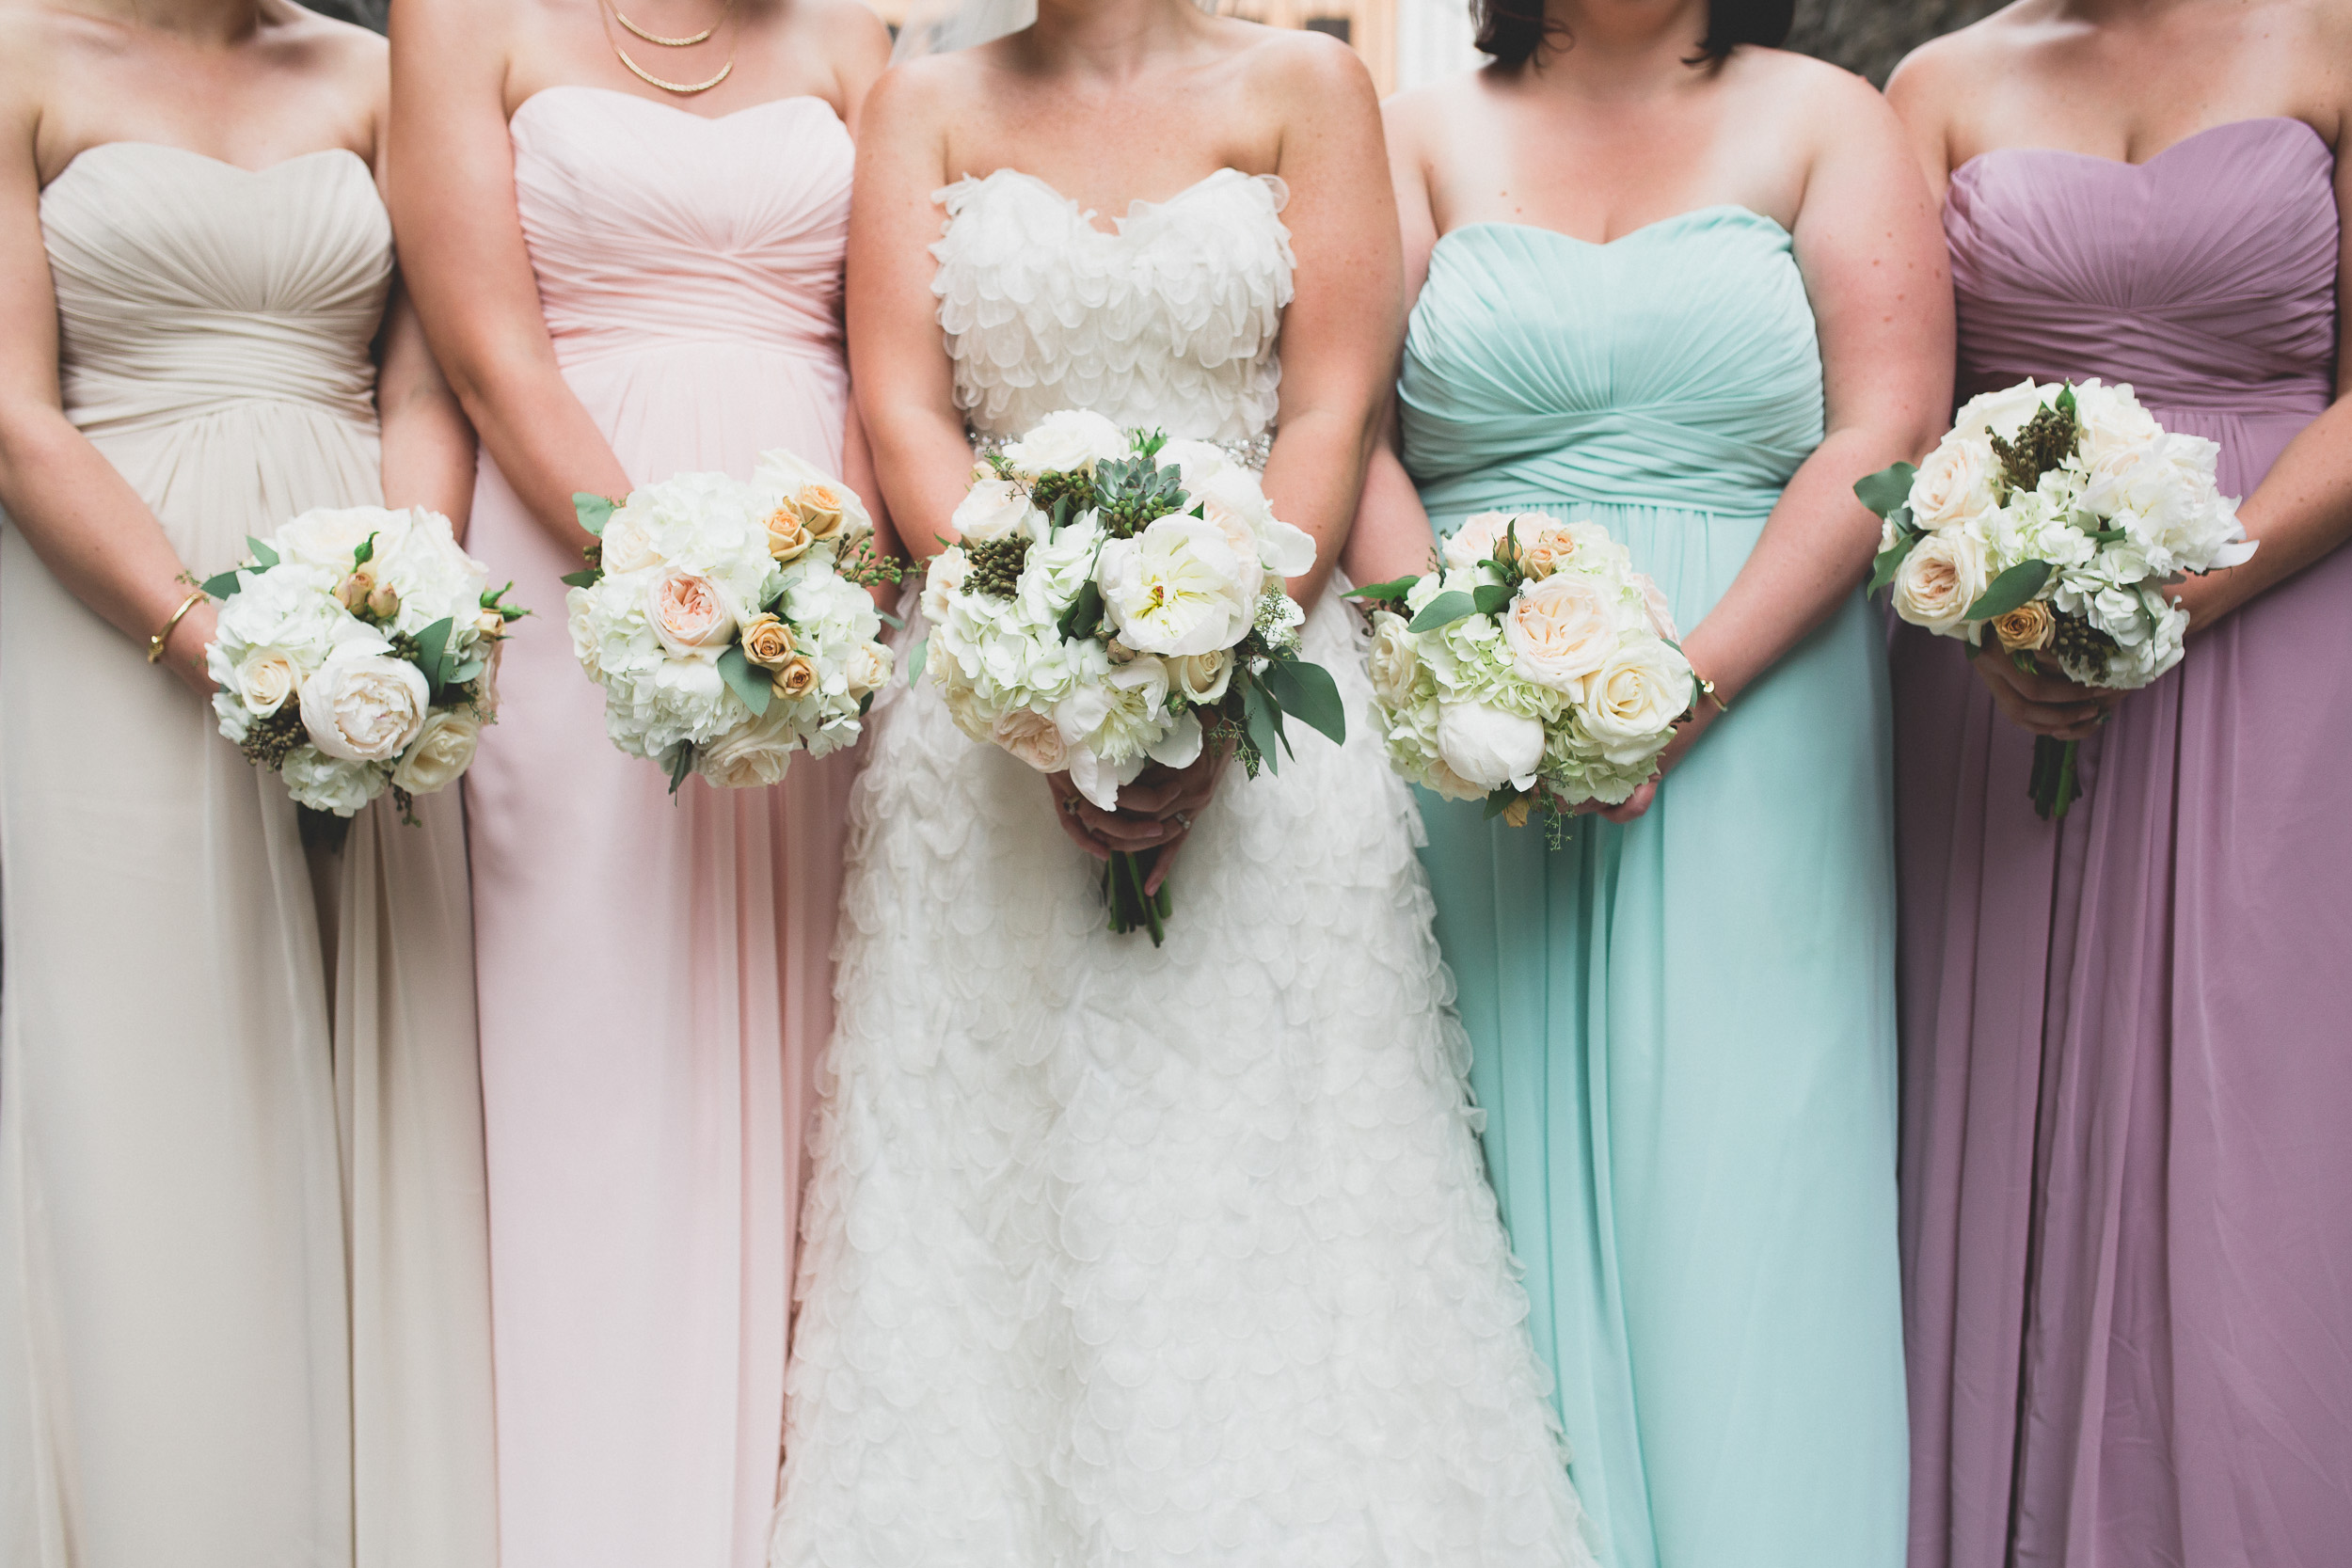 59-different-colored-bridesmaid-dresses.jpg